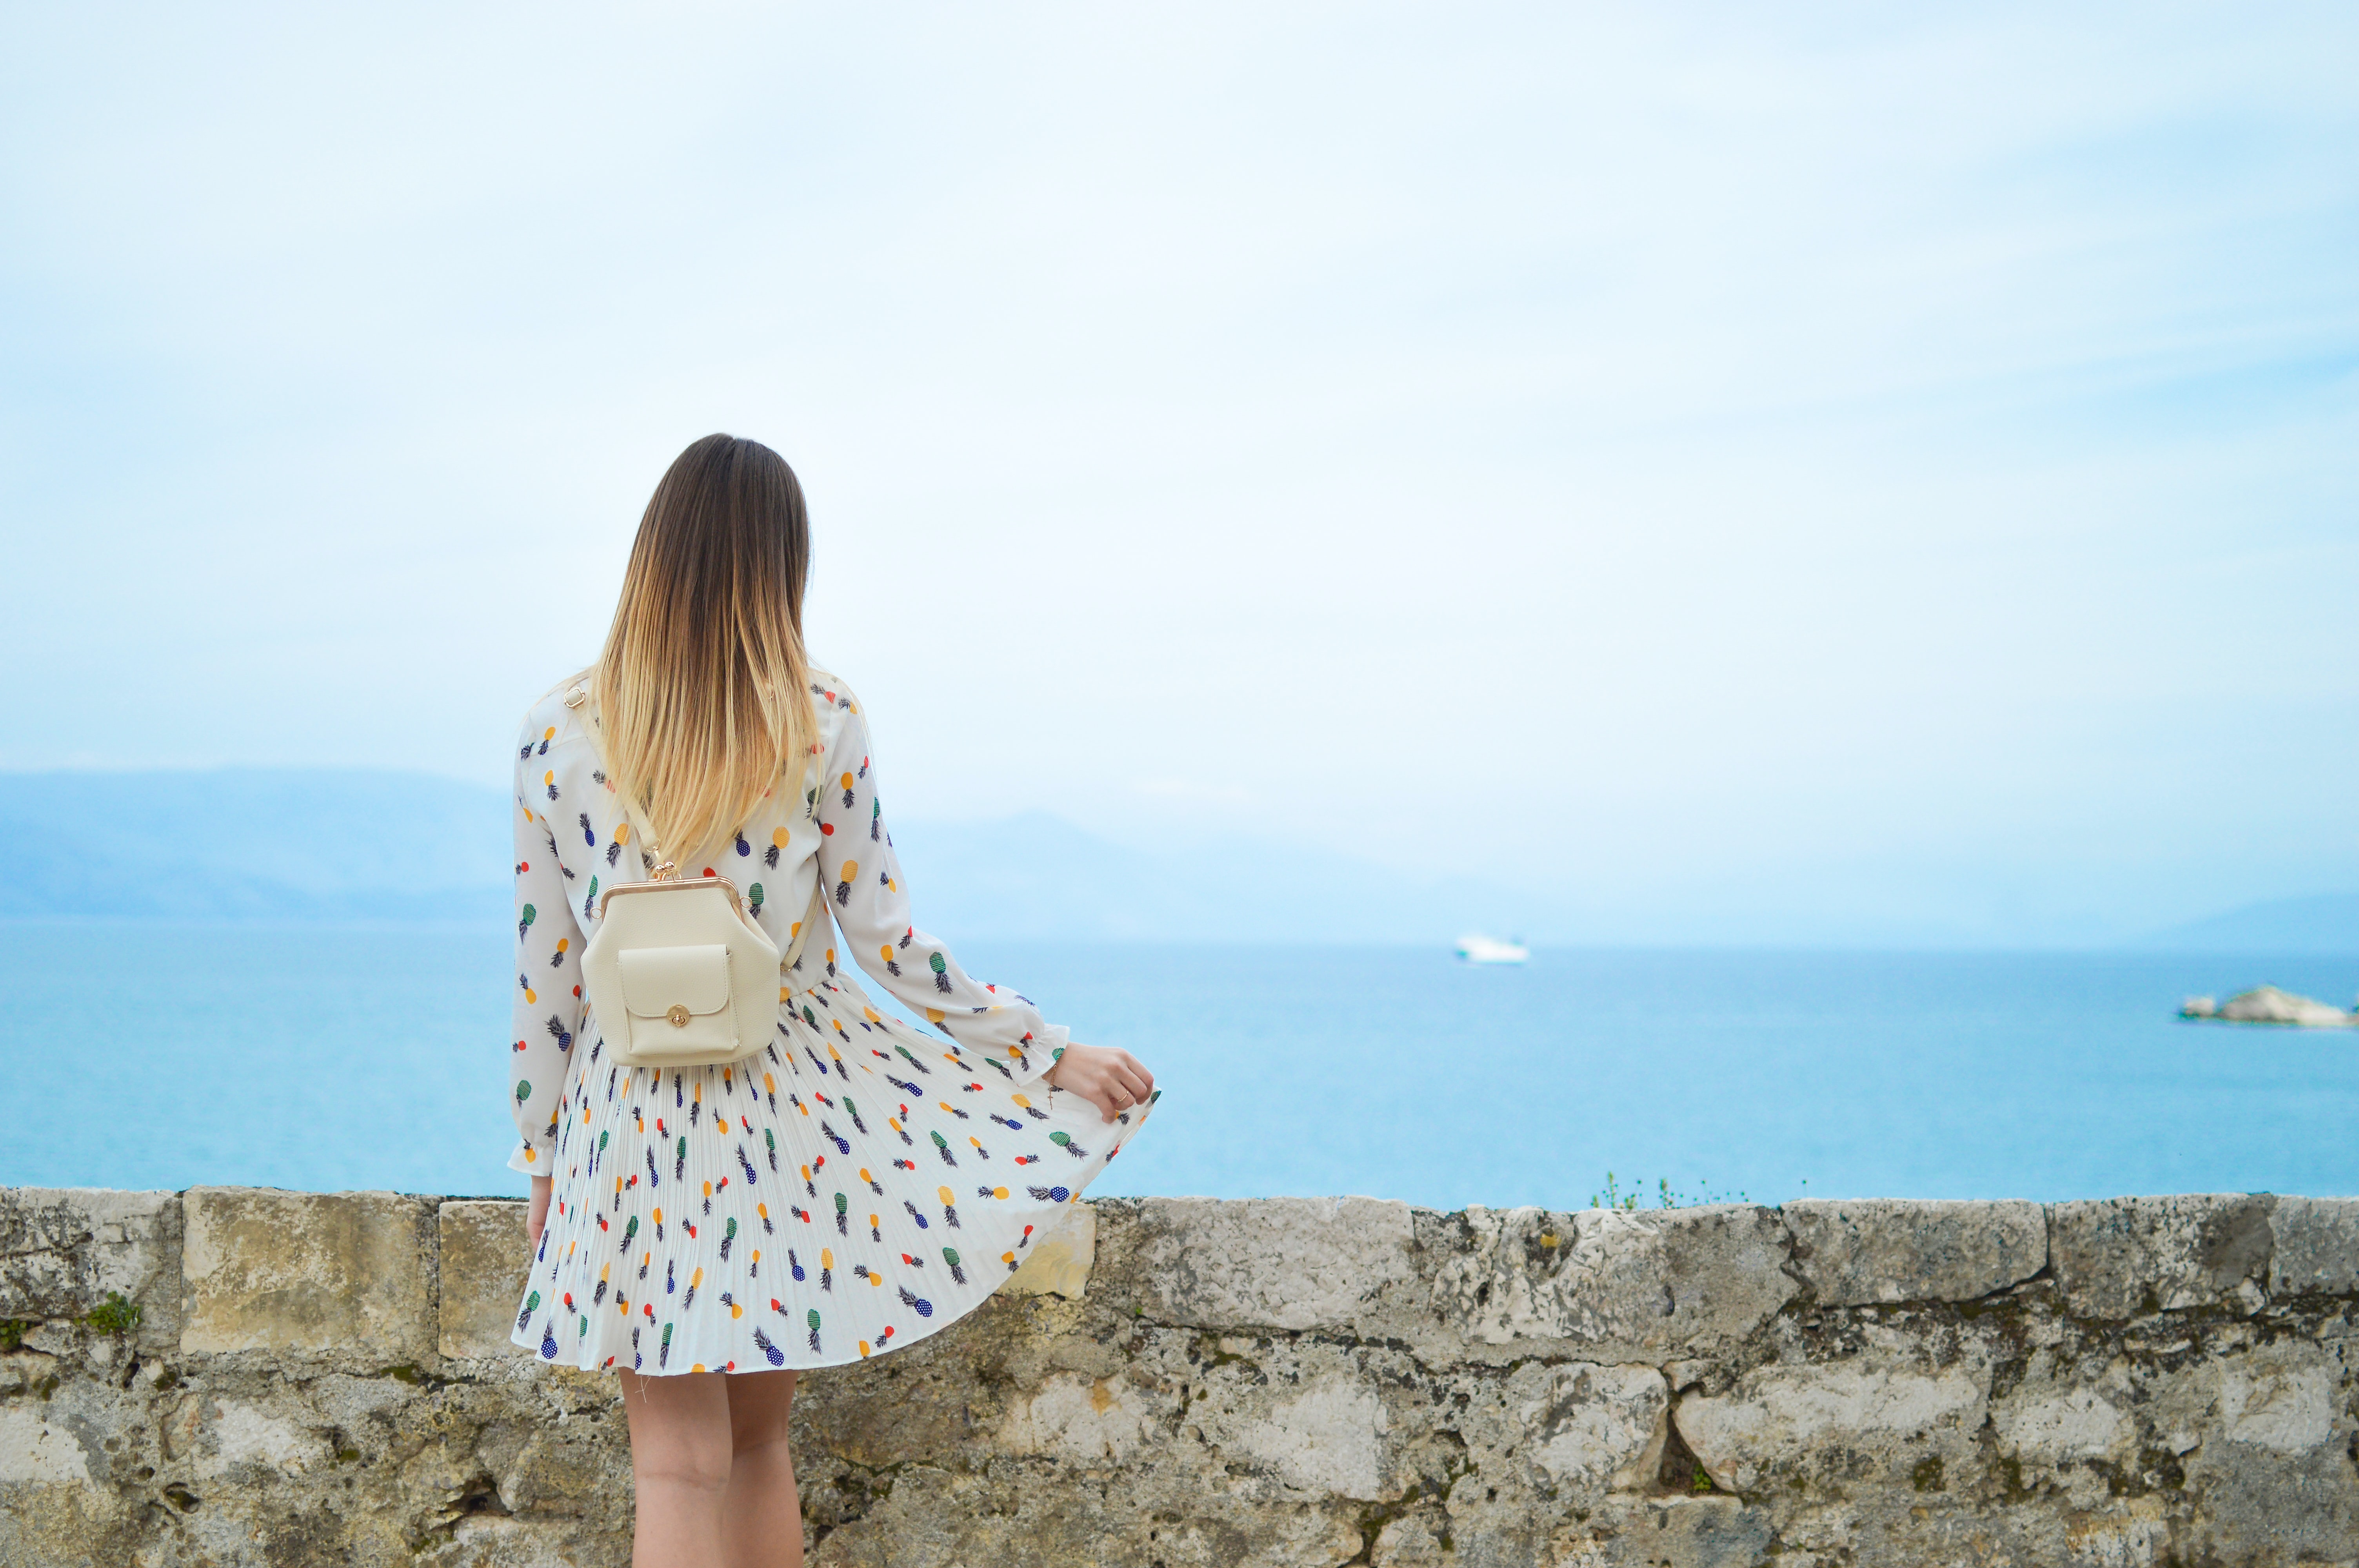 woman in white dress looking at body of water